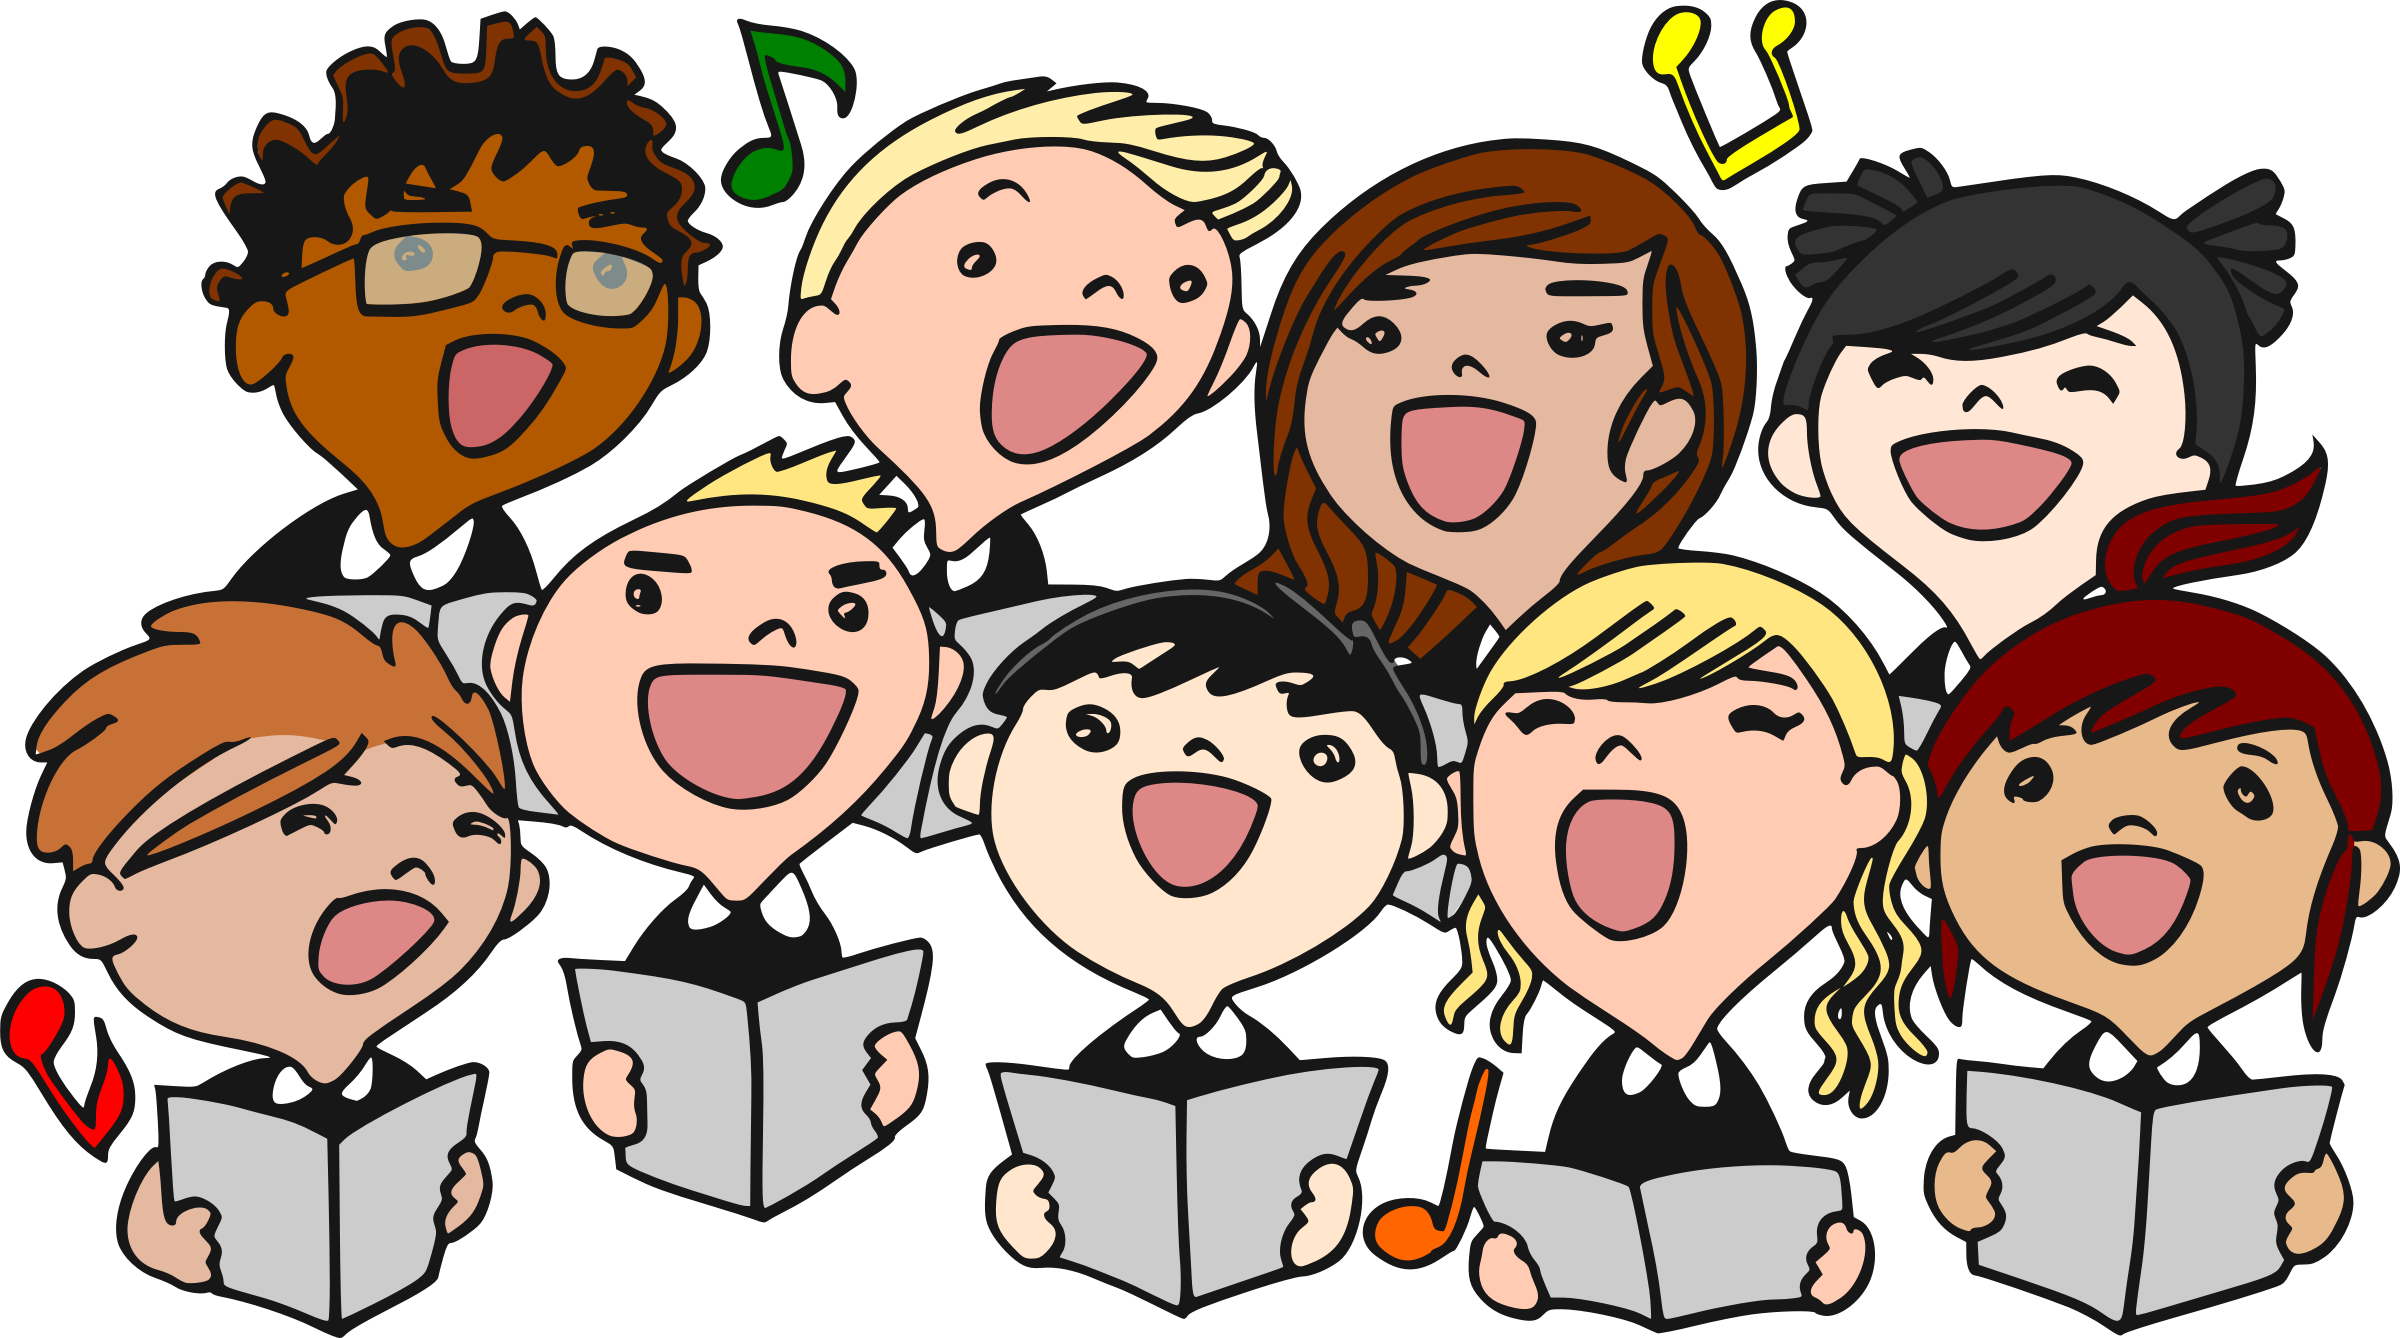 High school choir clipart picture transparent Select Ensemble of the Sycamore High School Choral Program - College ... picture transparent